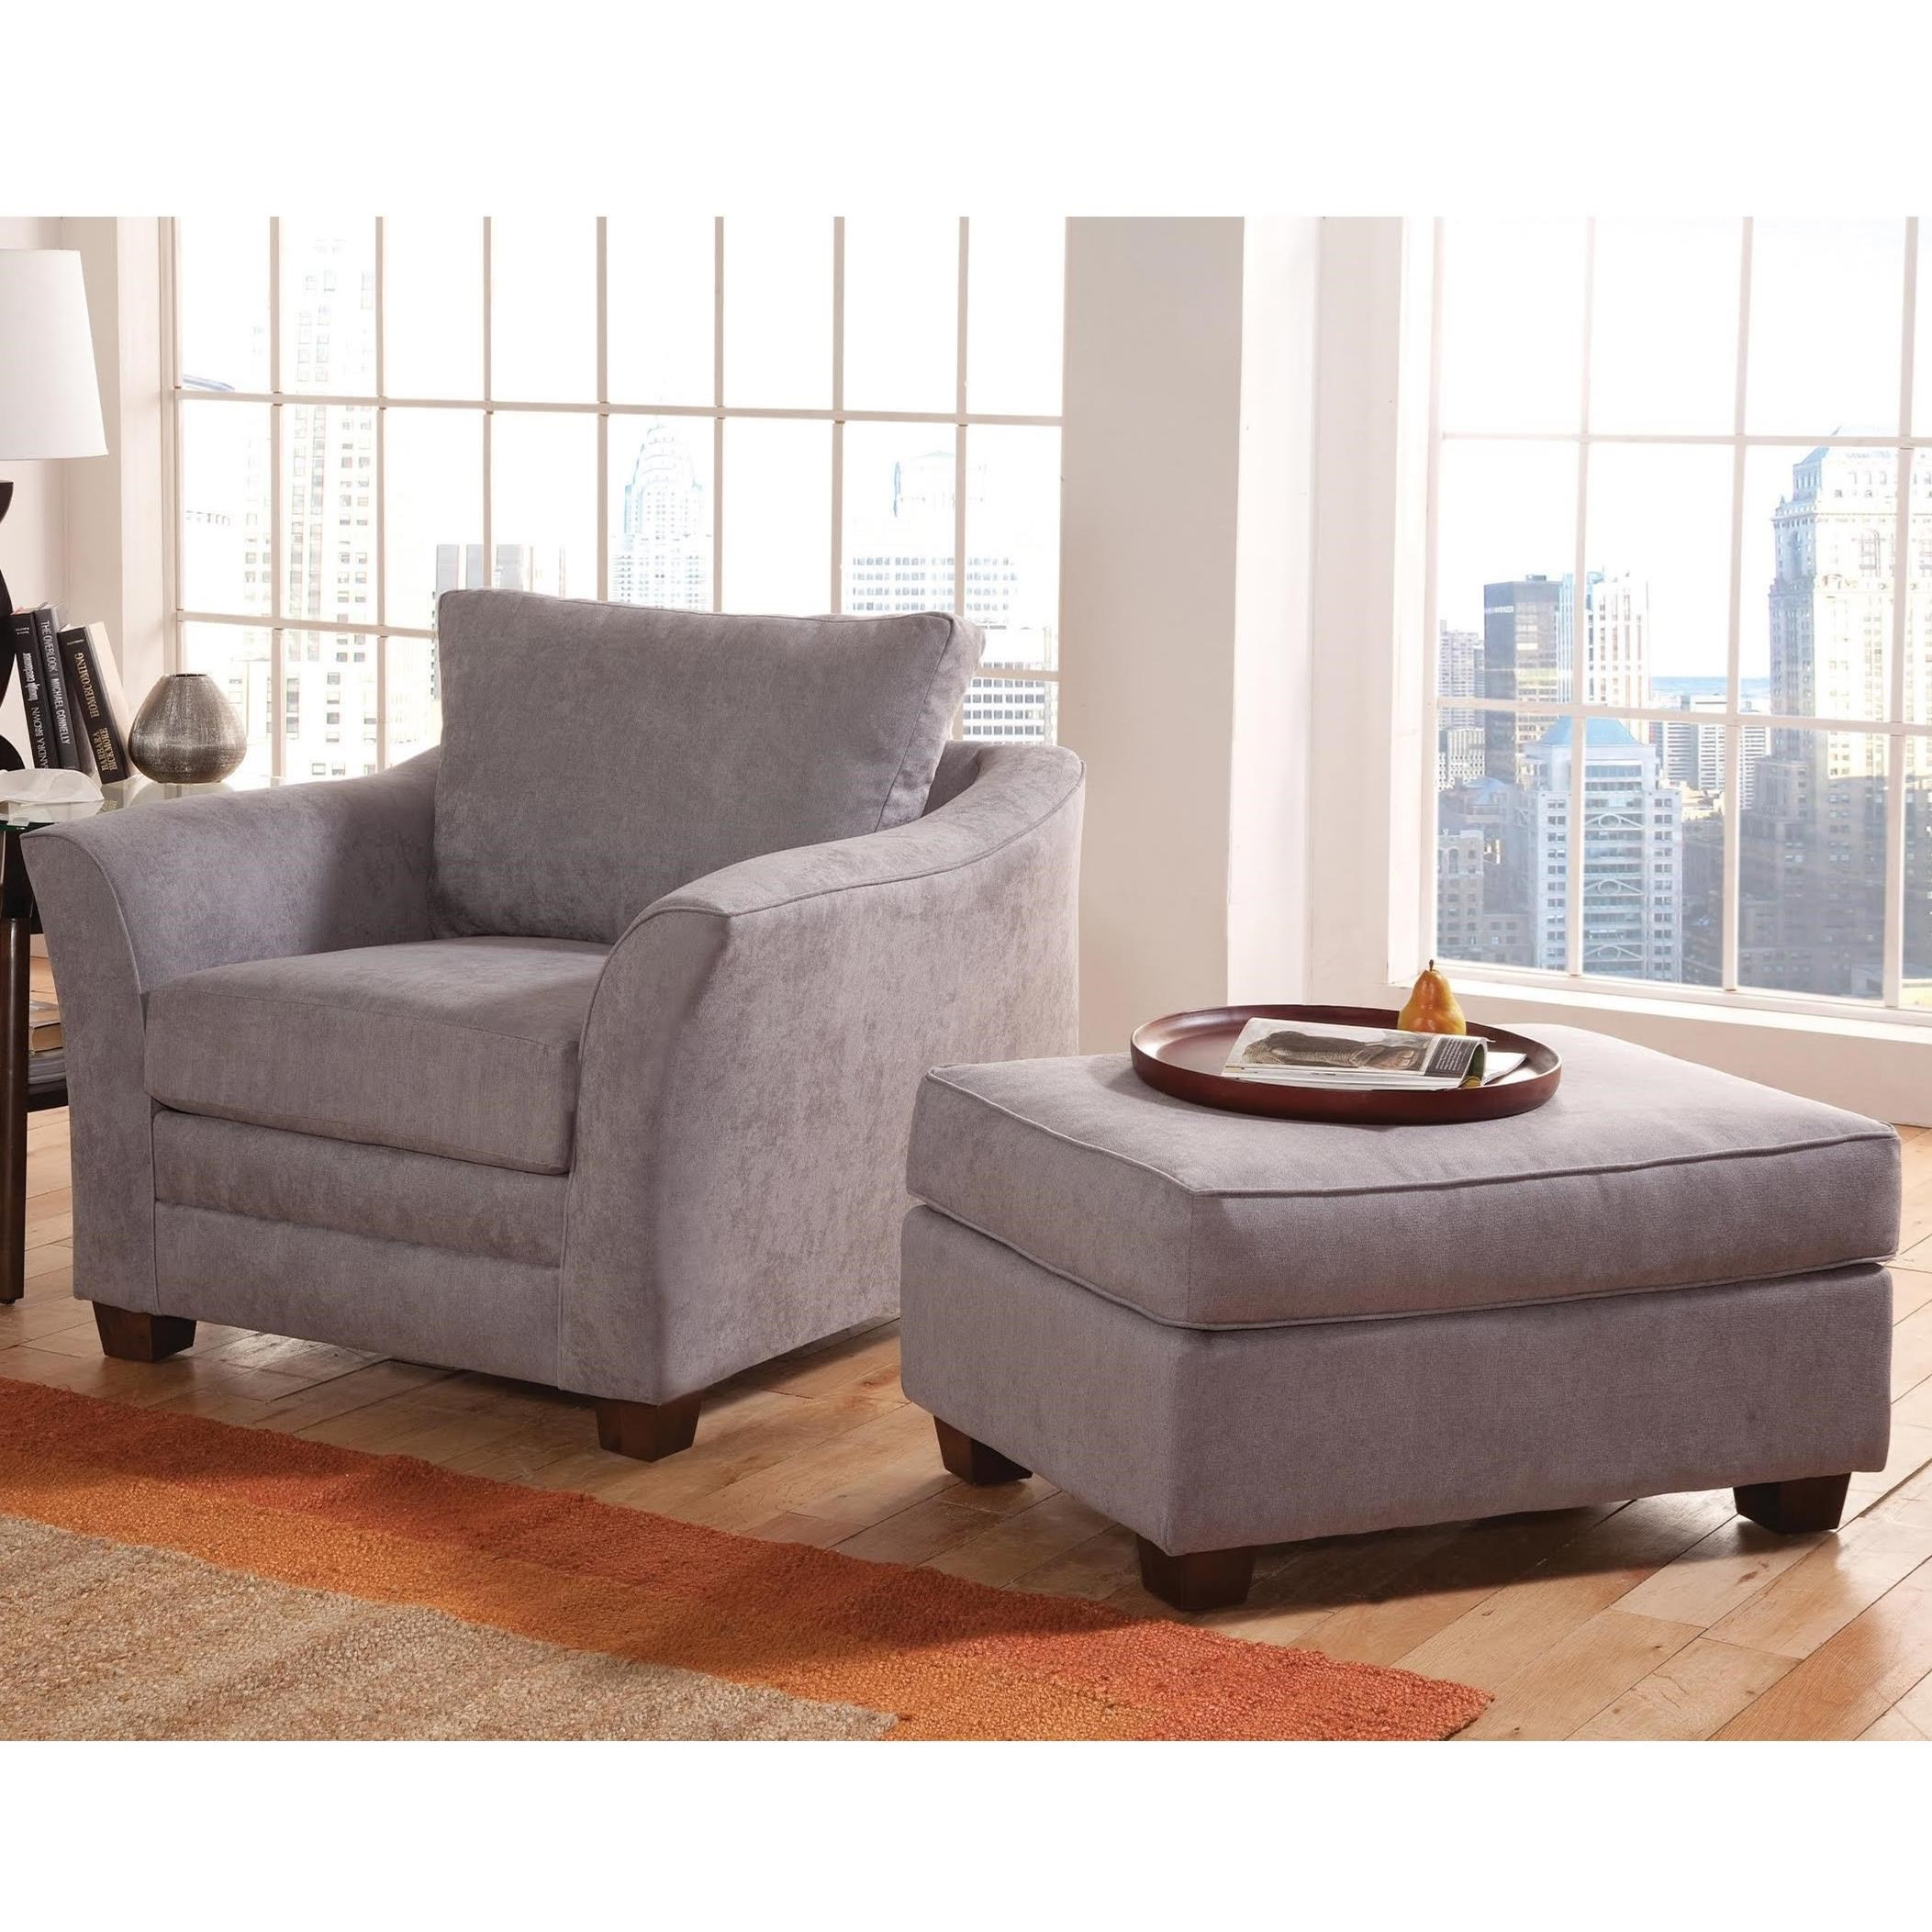 Genial Hatfield Chair And Ottoman Set By Benchmark Upholstery